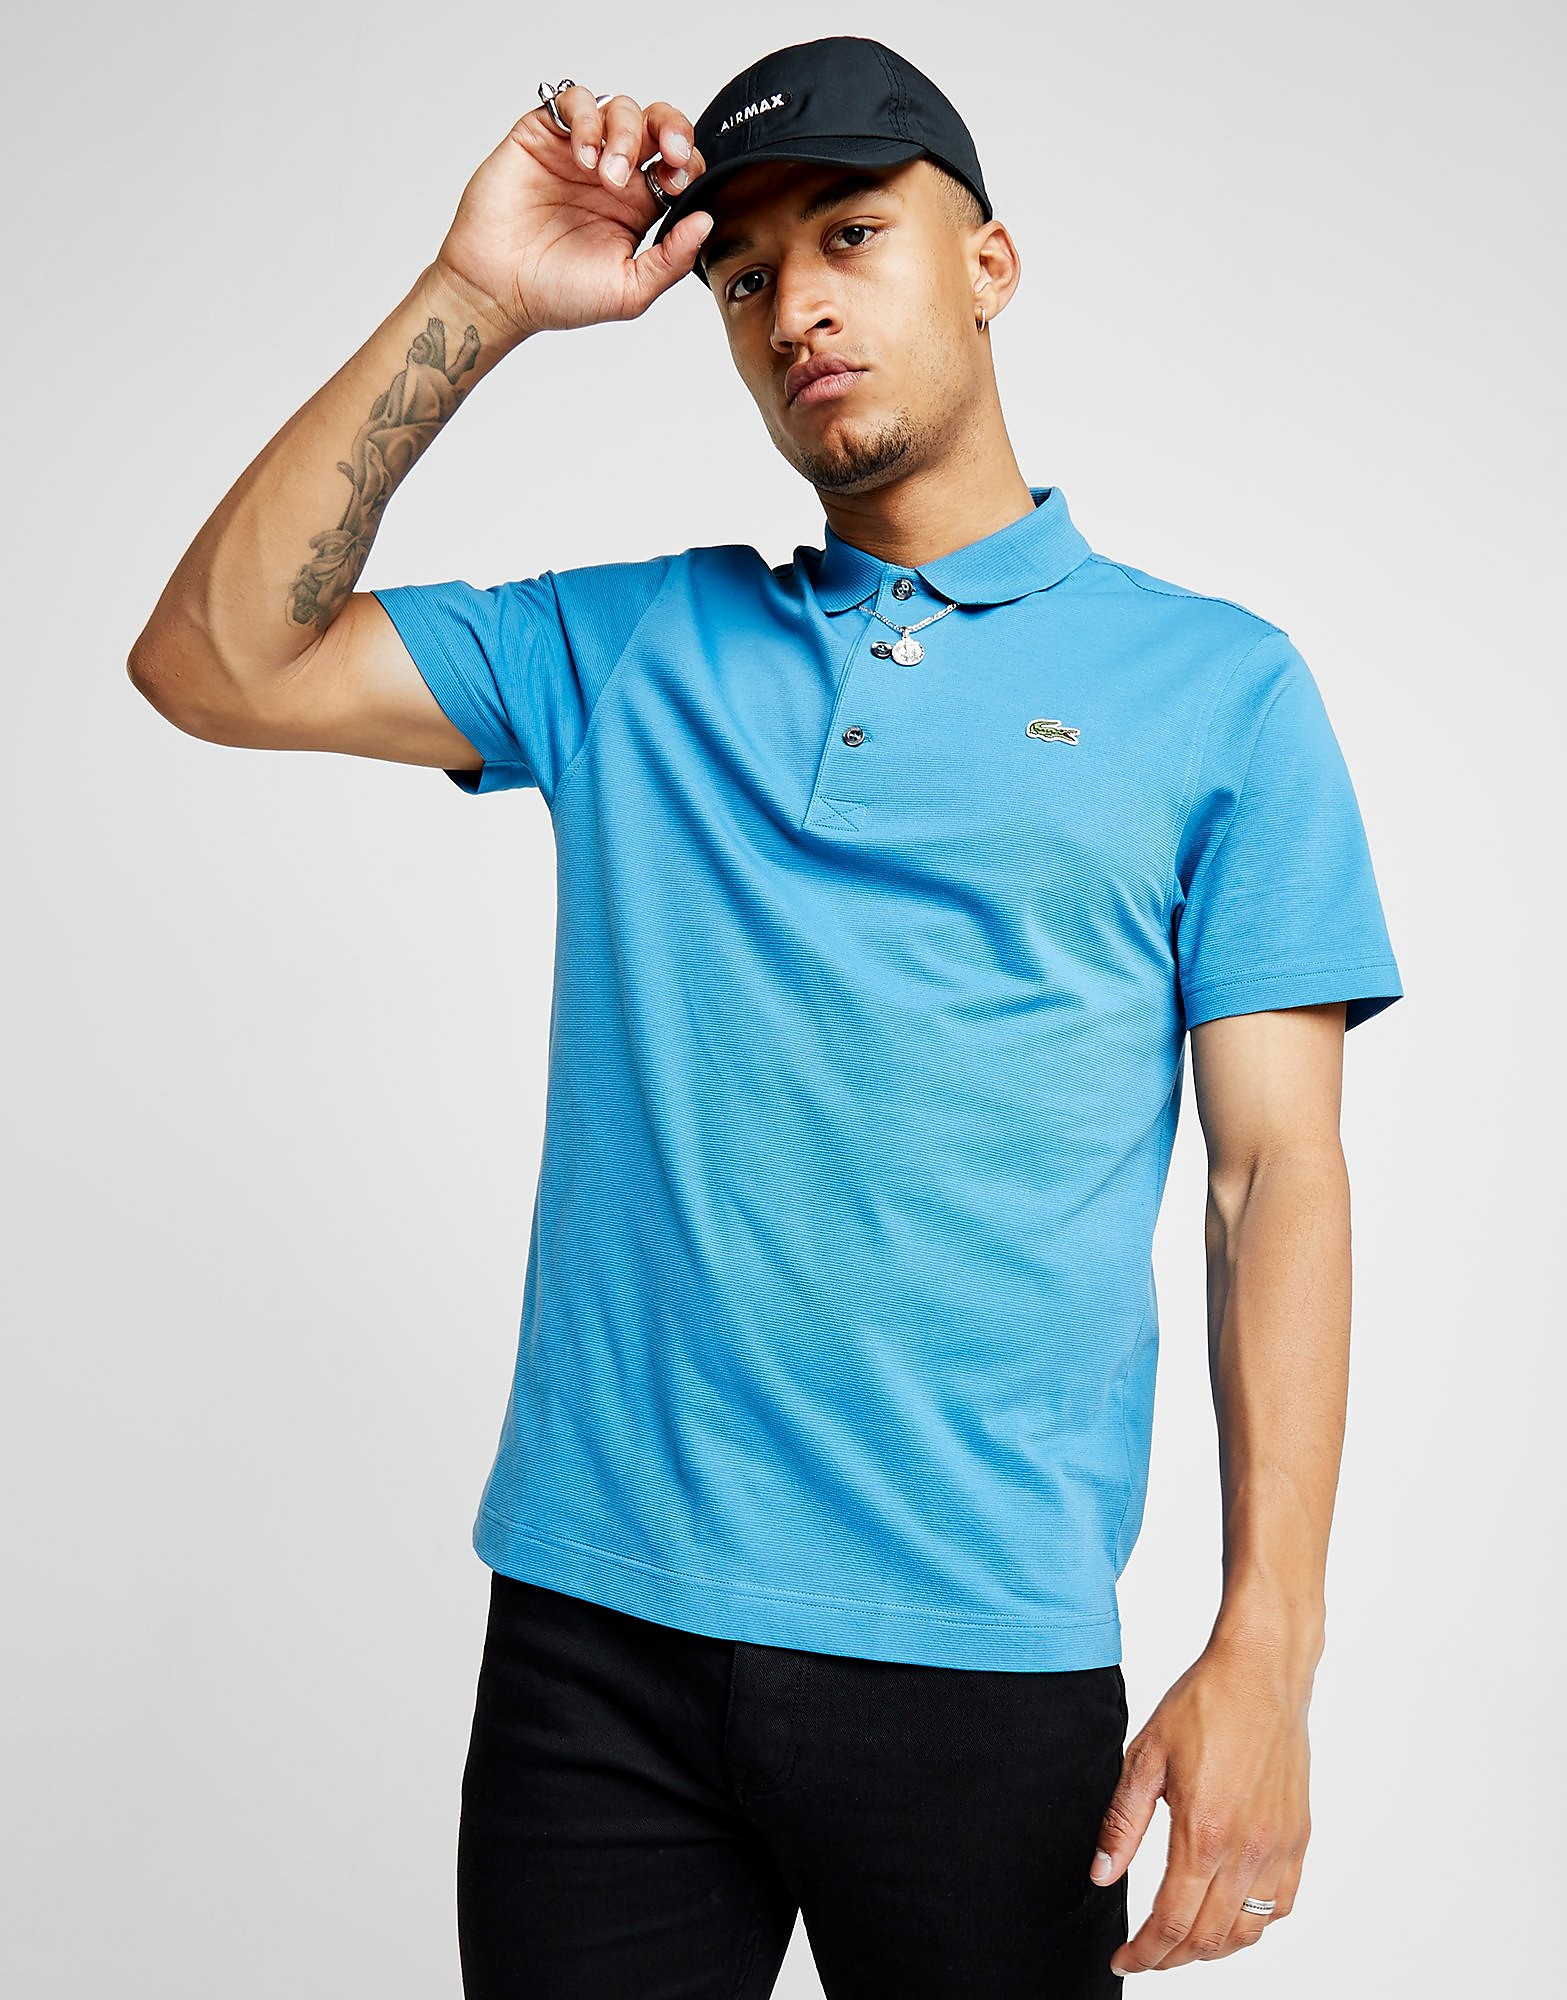 af0e1c32109a Lacoste Alligator Polo Shirt - Bleu, Bleu